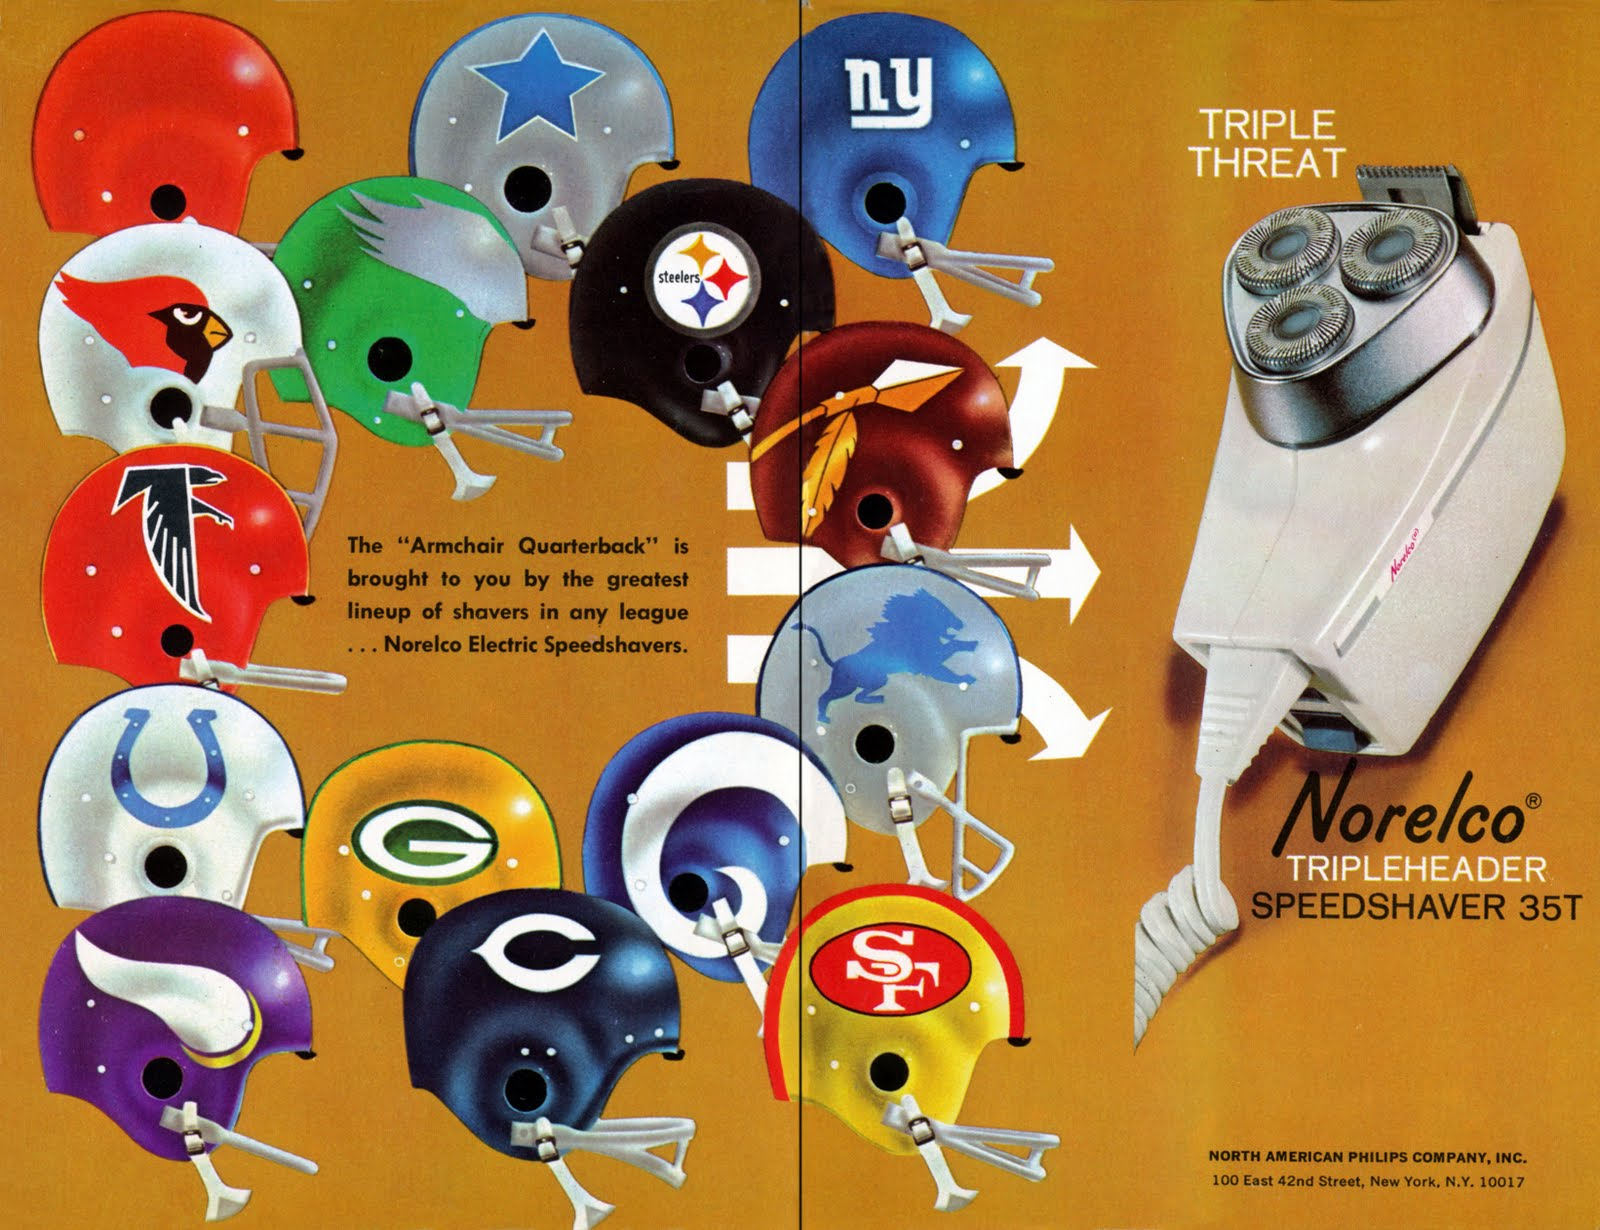 here is a cool advertisement from 1966 which shows the nfl teams